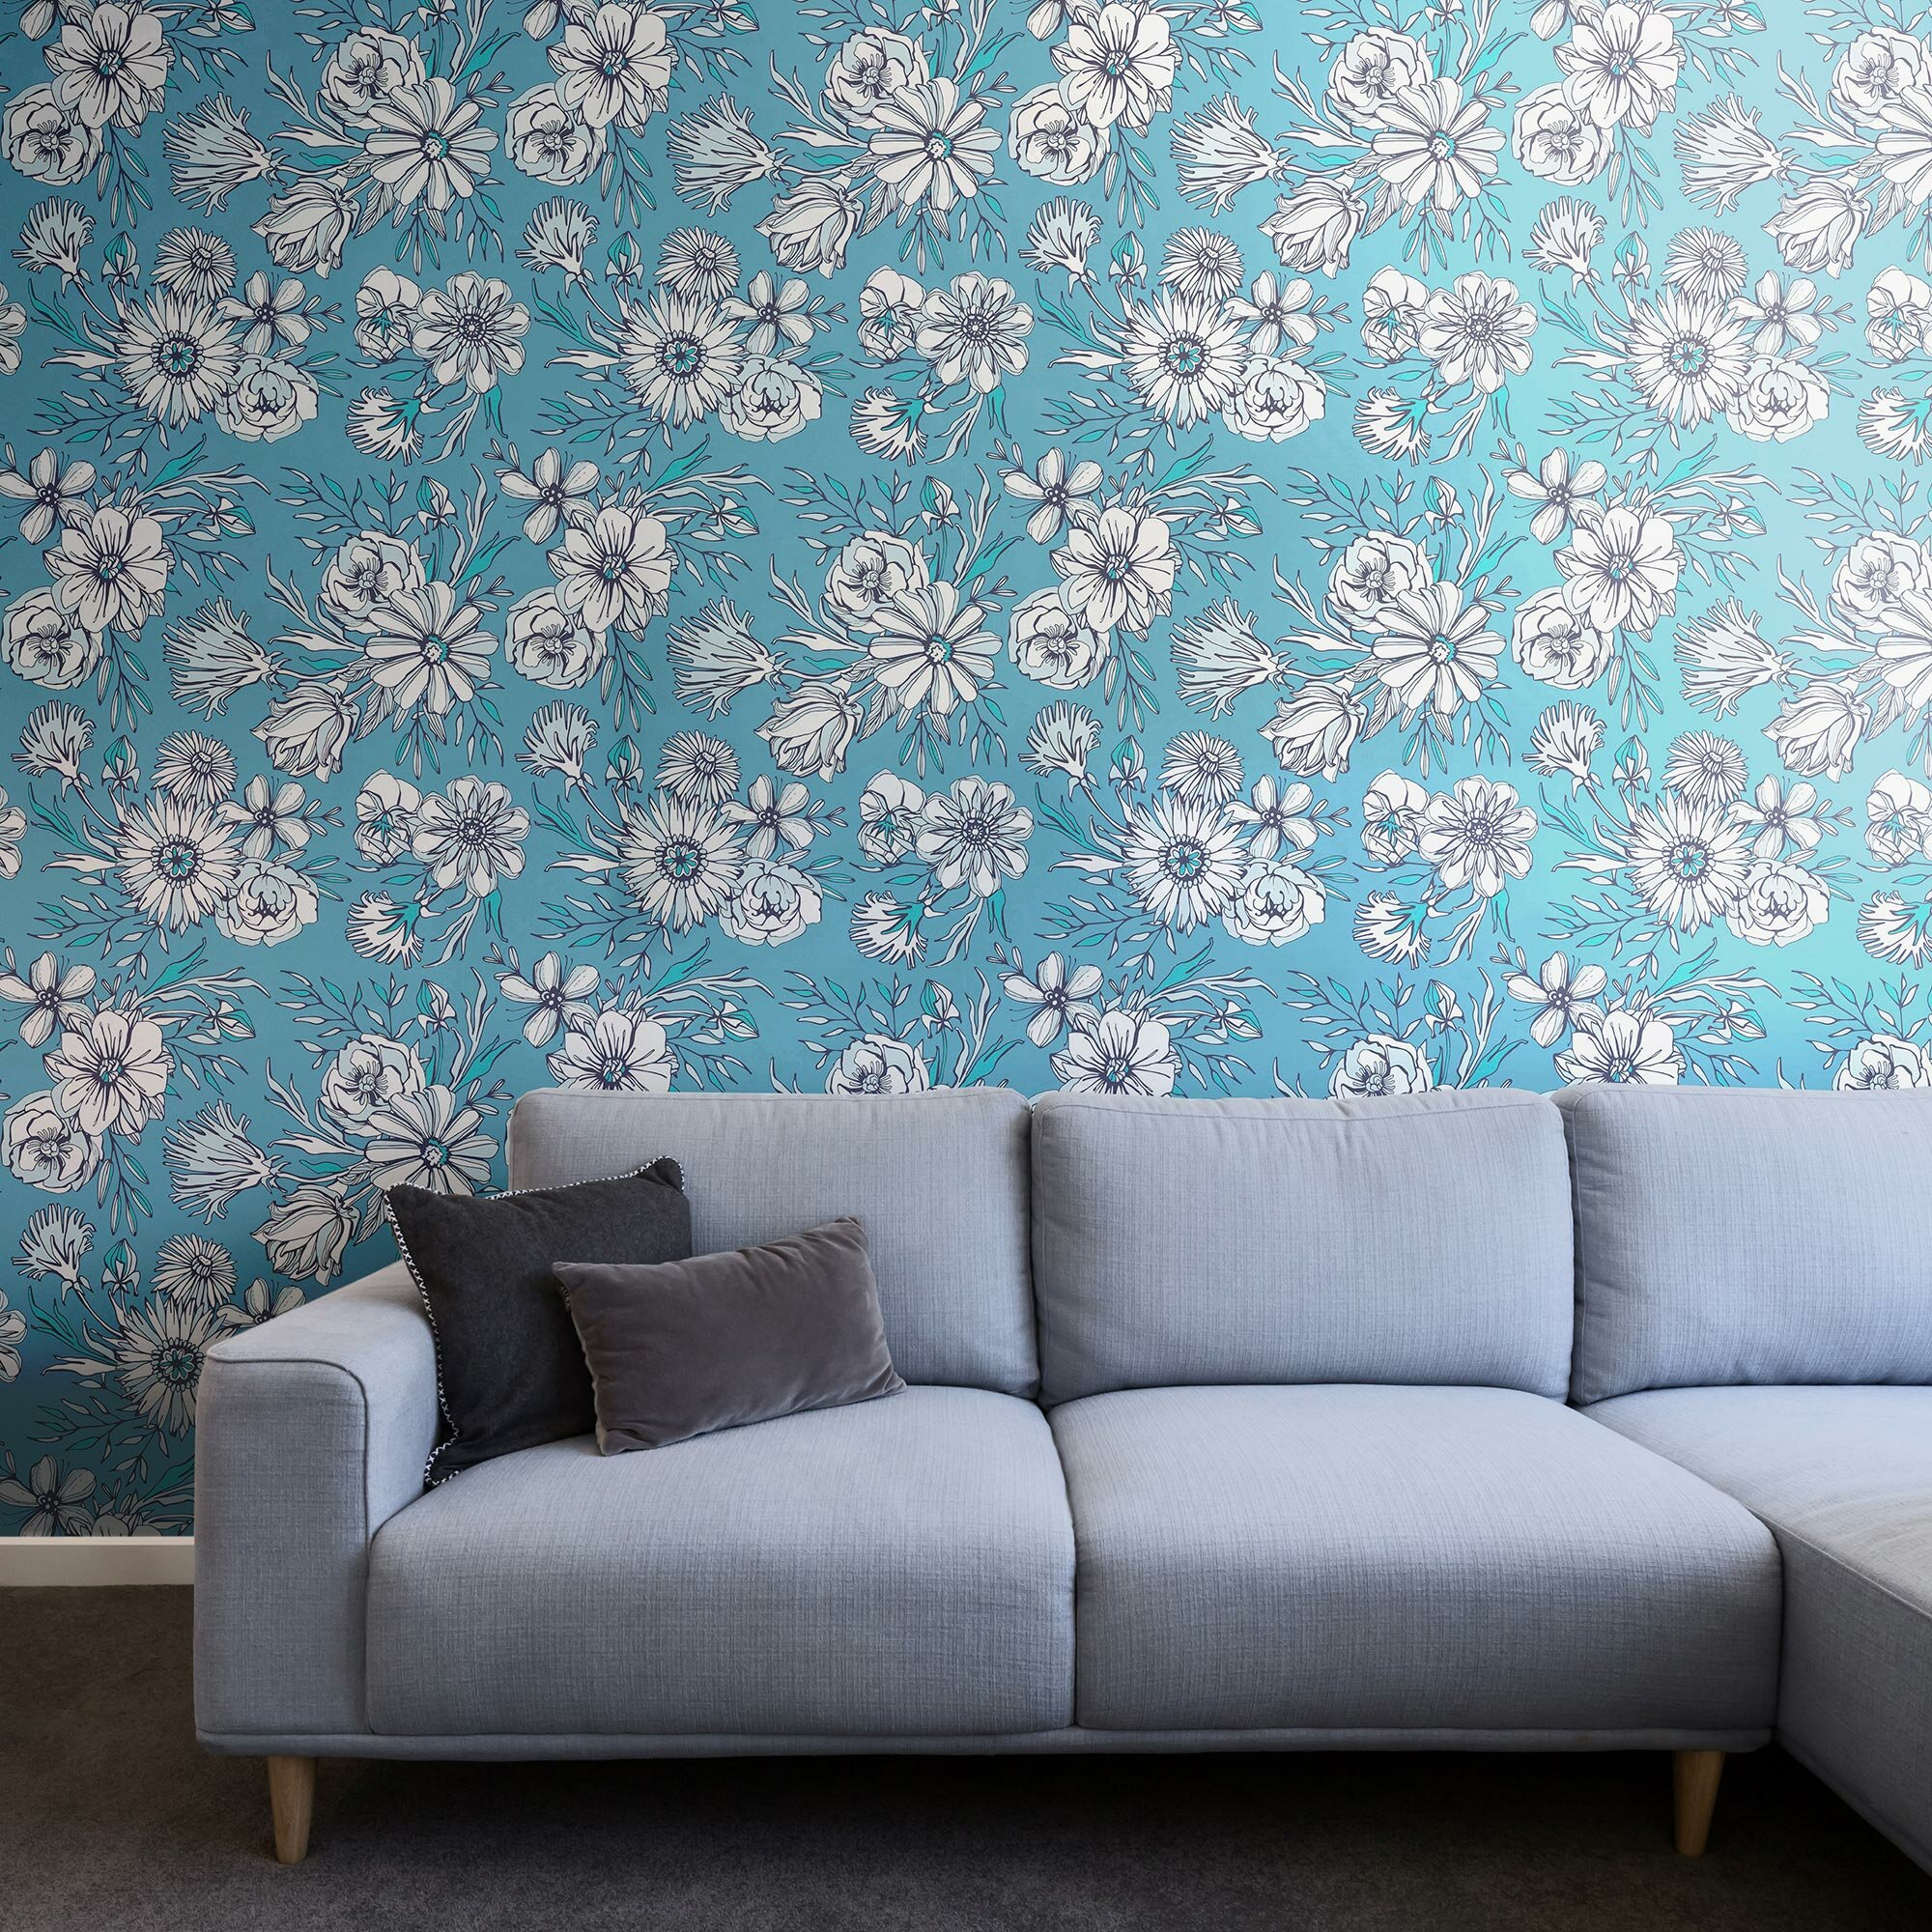 Watercolor Stripe Repositionable and Removable Peel and Stick Wallpaper